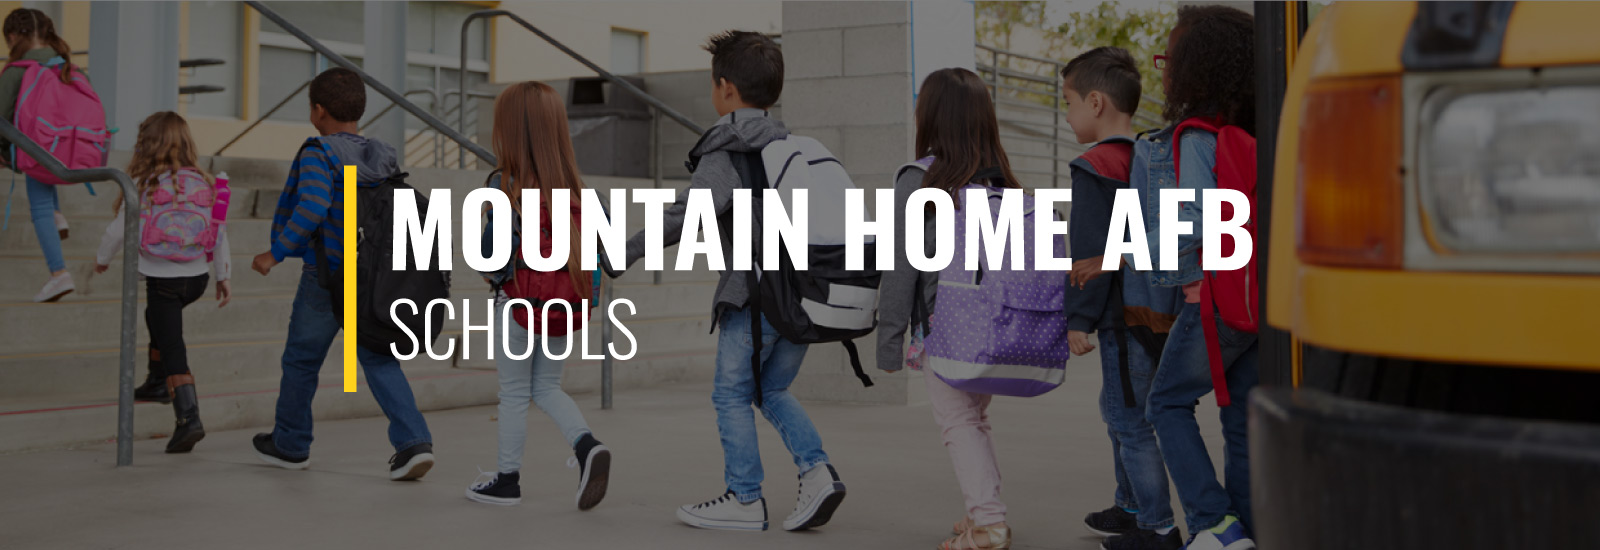 Mountain Home AFB Schools